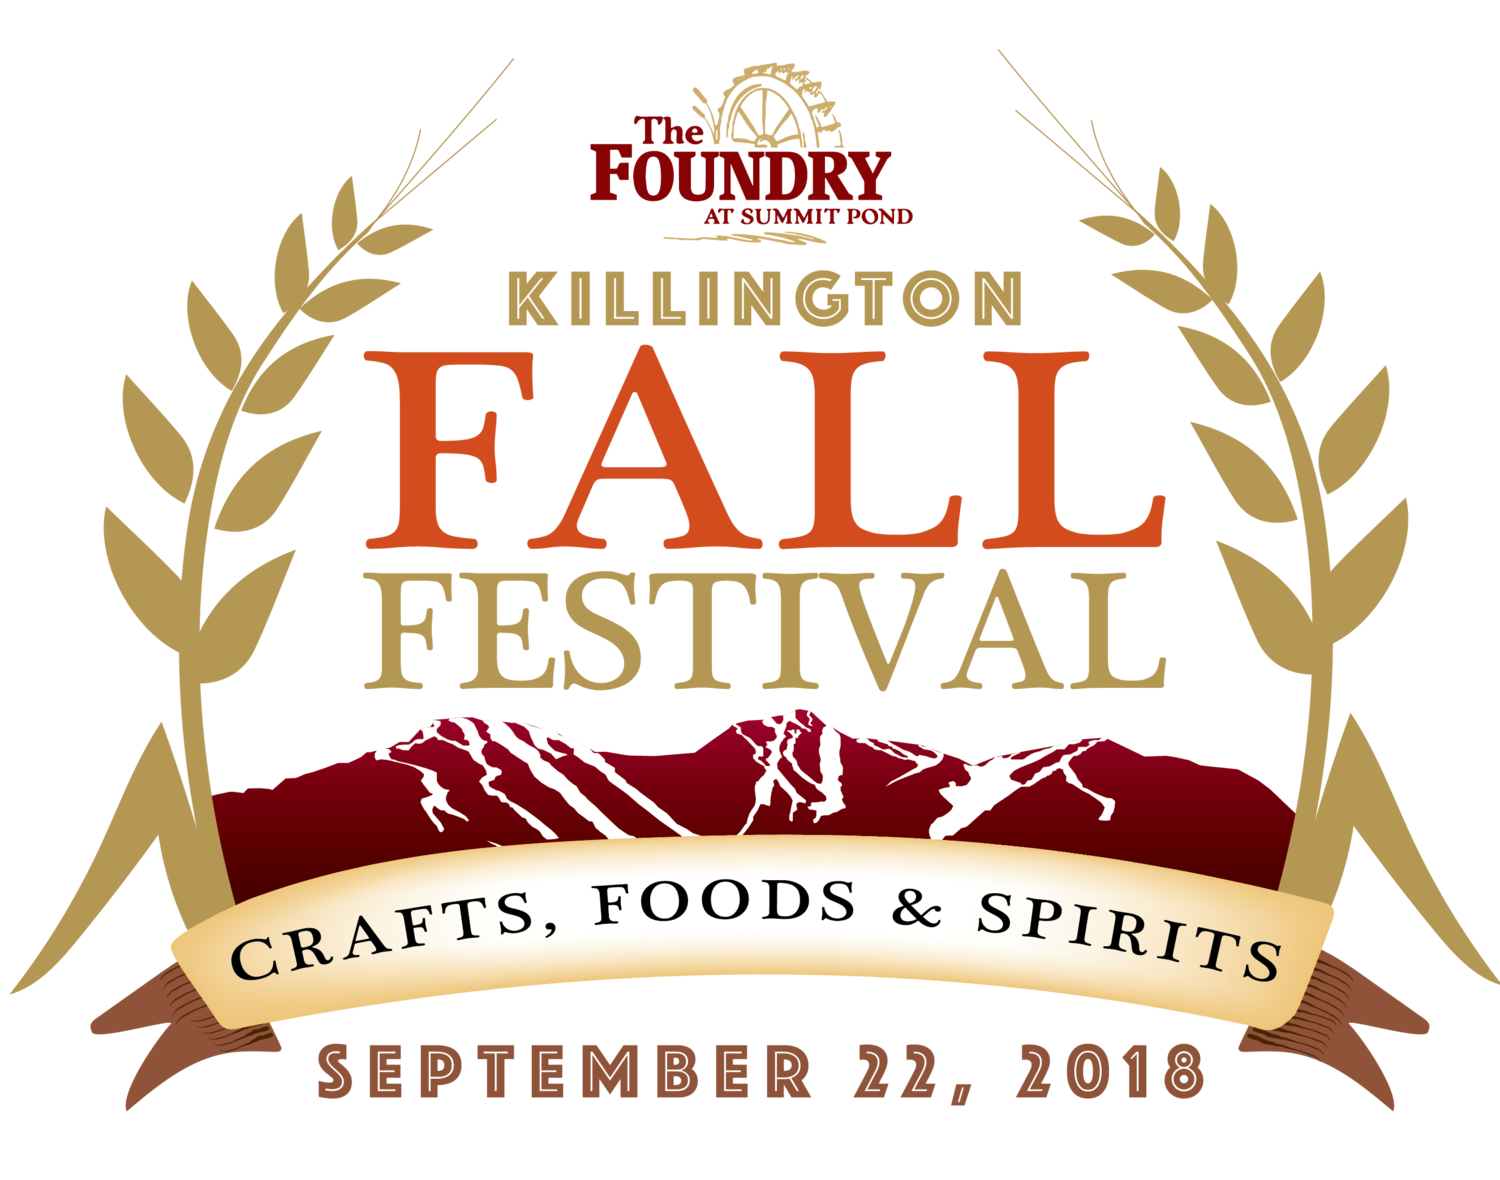 Killington Fall Festival